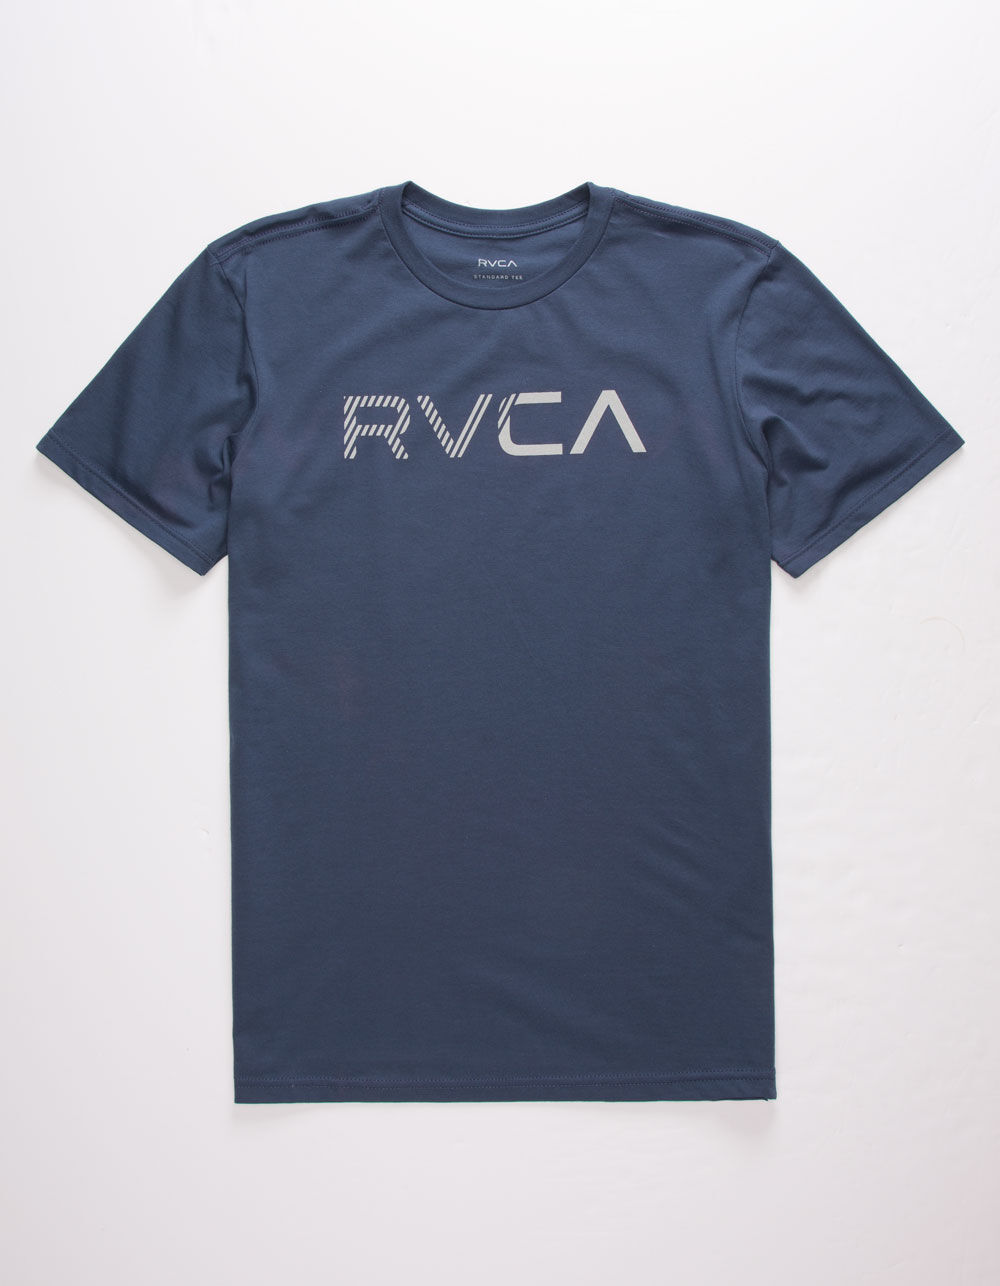 RVCA Blinded Heather Navy T-Shirt